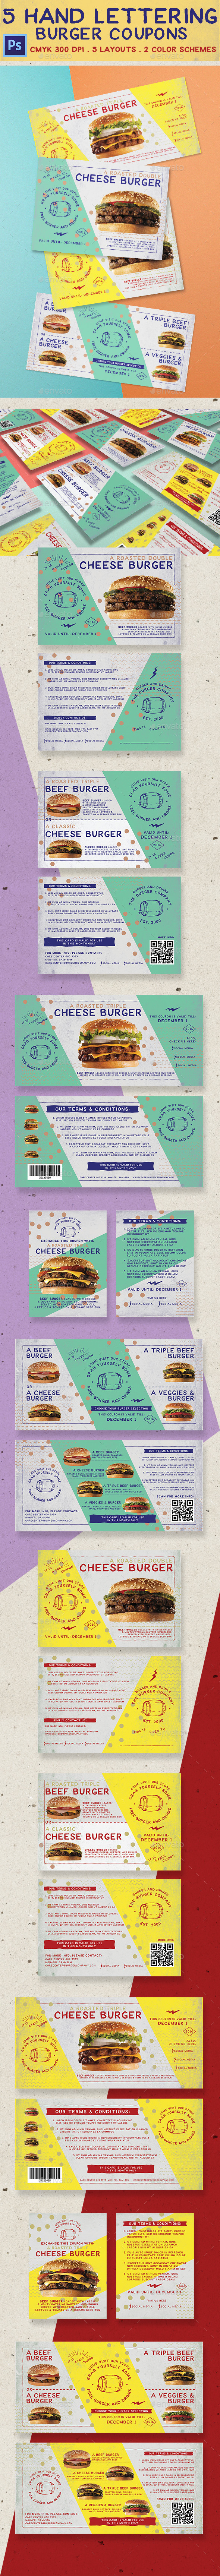 5 Fun Hand Lettering Burger Coupon - Loyalty Cards Cards & Invites